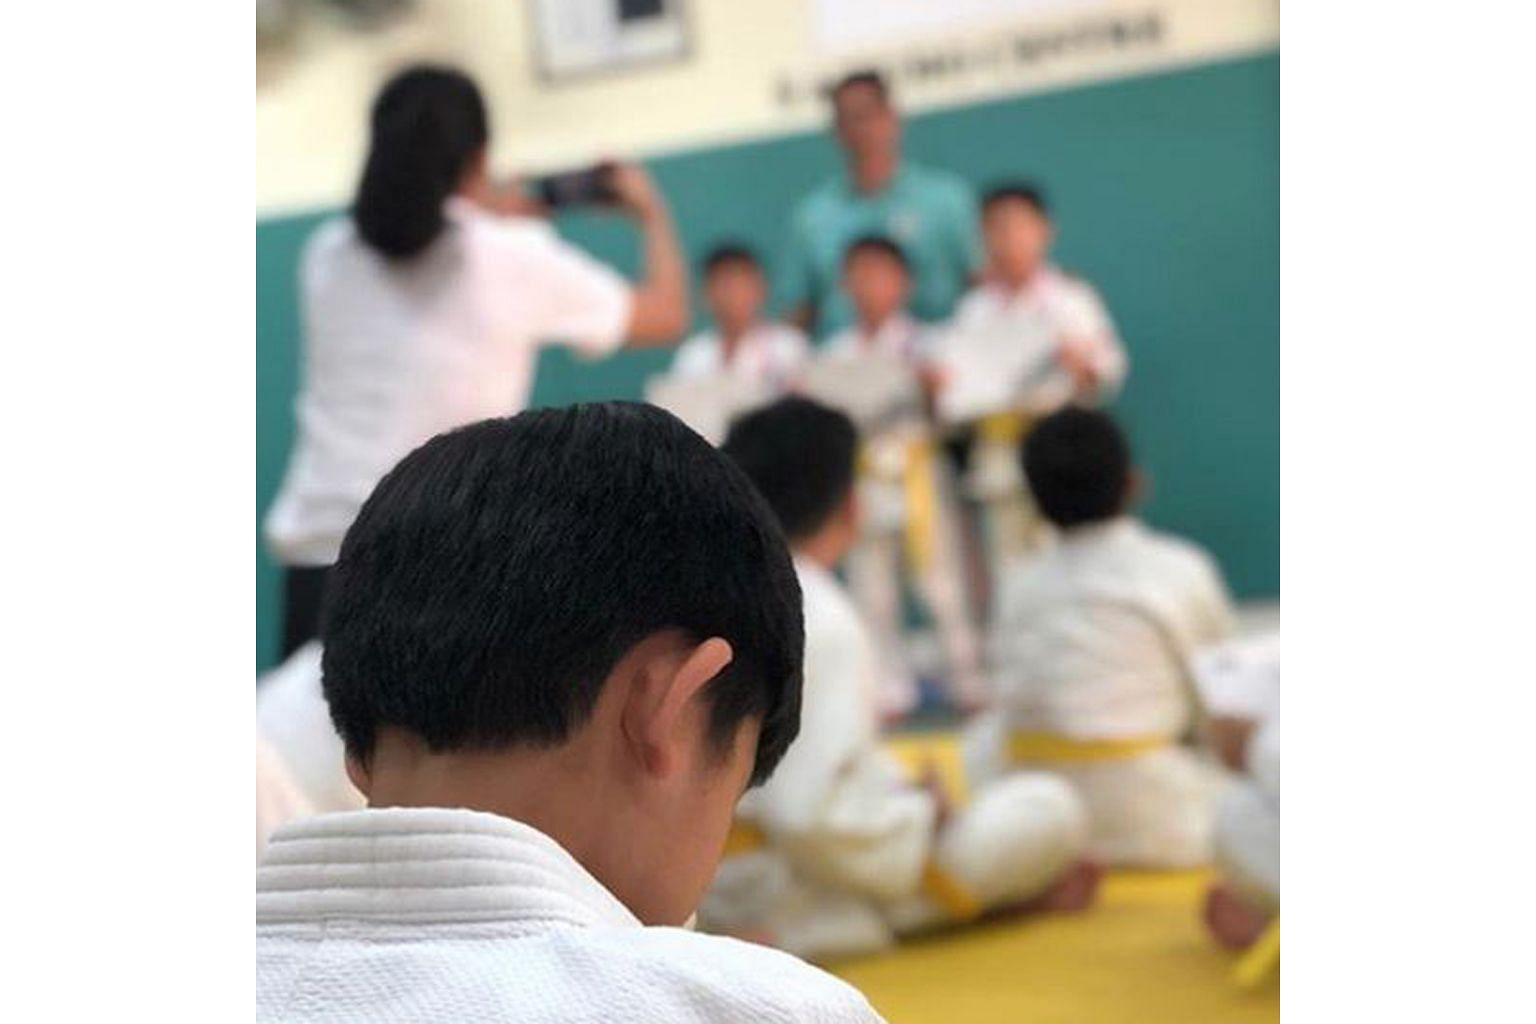 WIN OR LOSE...: It is the experience that counts. That is probably the message that home-grown singer Stefanie Sun wanted to send to her son after he failed to win in a judo competition. Her six-year-old son was taking part in the competition for th